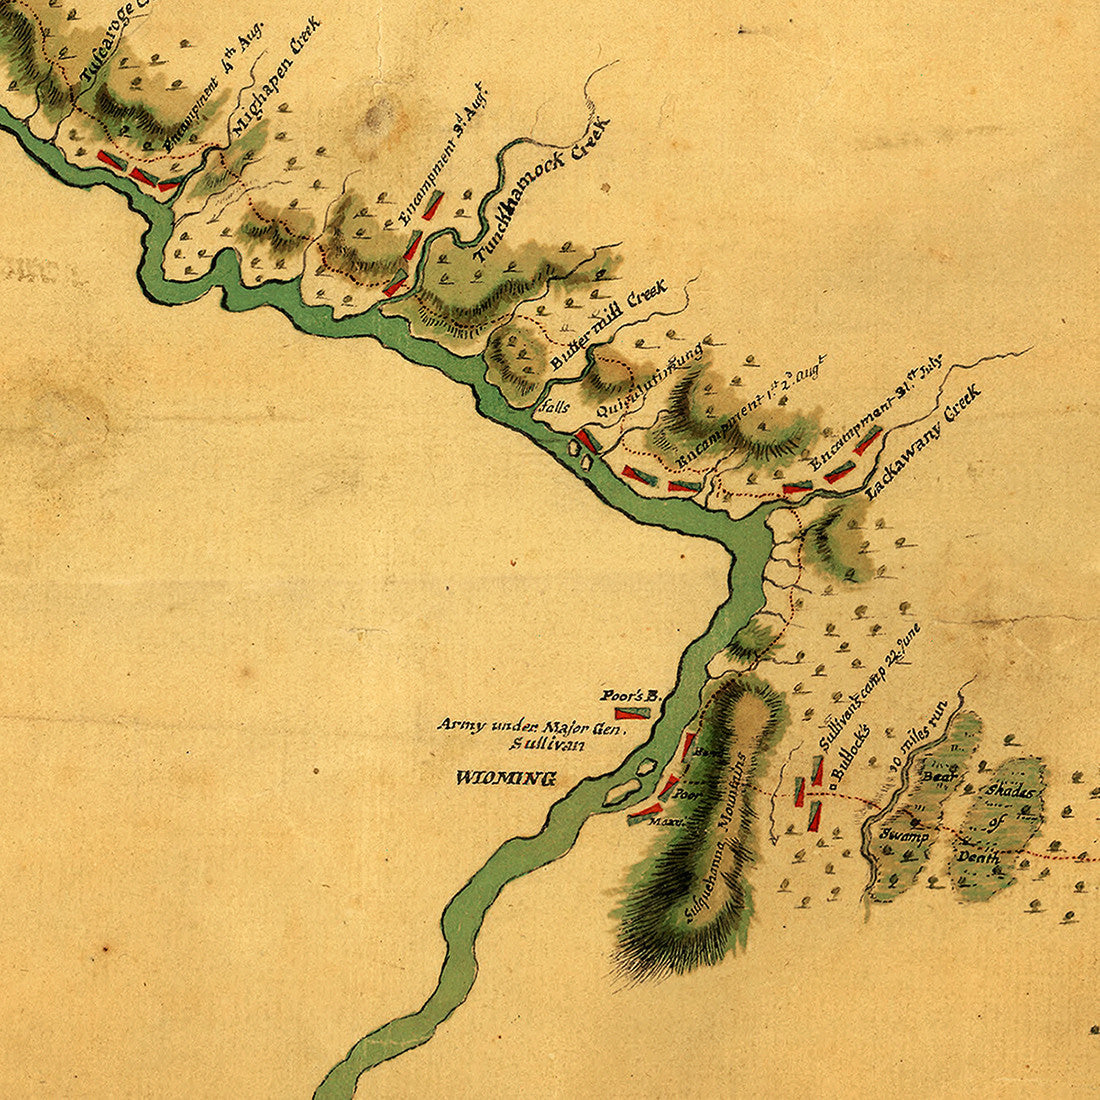 Map Of New York Finger Lakes.New York 1779 Finger Lakes Sullivan Expedition Iroquois Confederacy Old Map